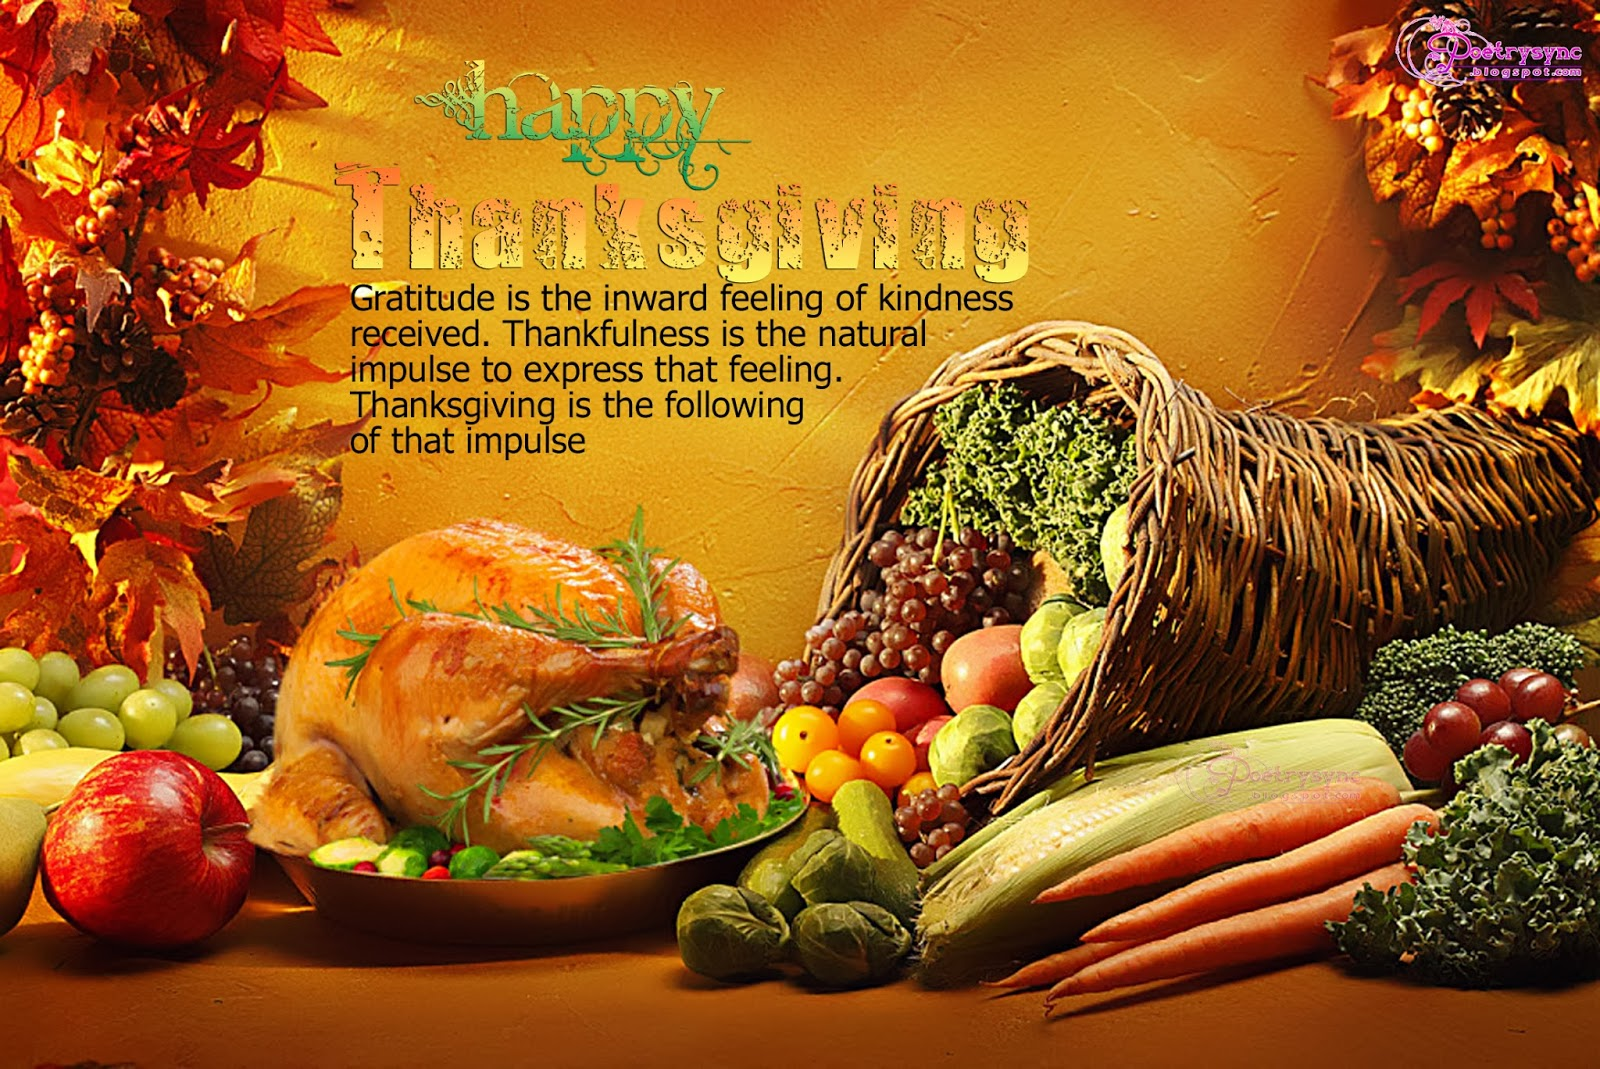 Quotes Christian Thanksgiving Blessing. QuotesGram